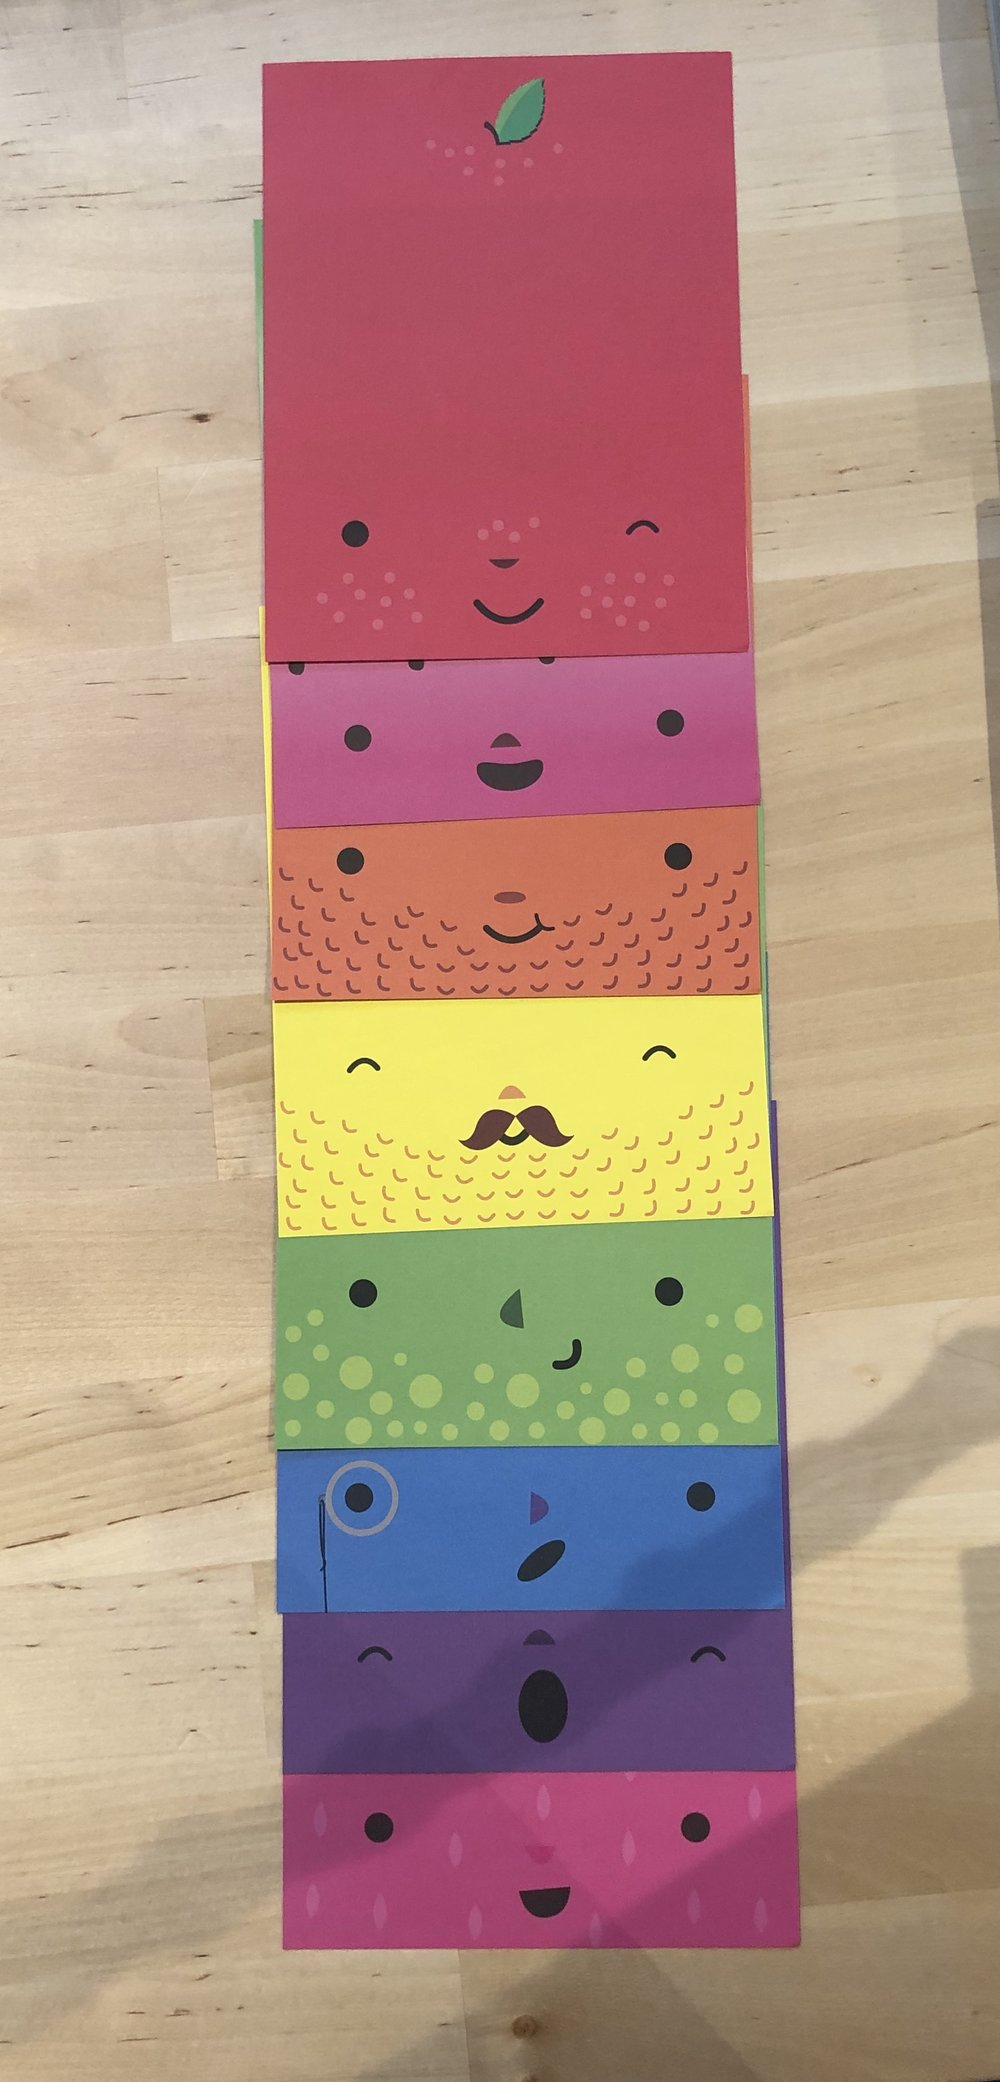 These are the eight fruit pages. Mustaches, monocles, and winks, oh my!